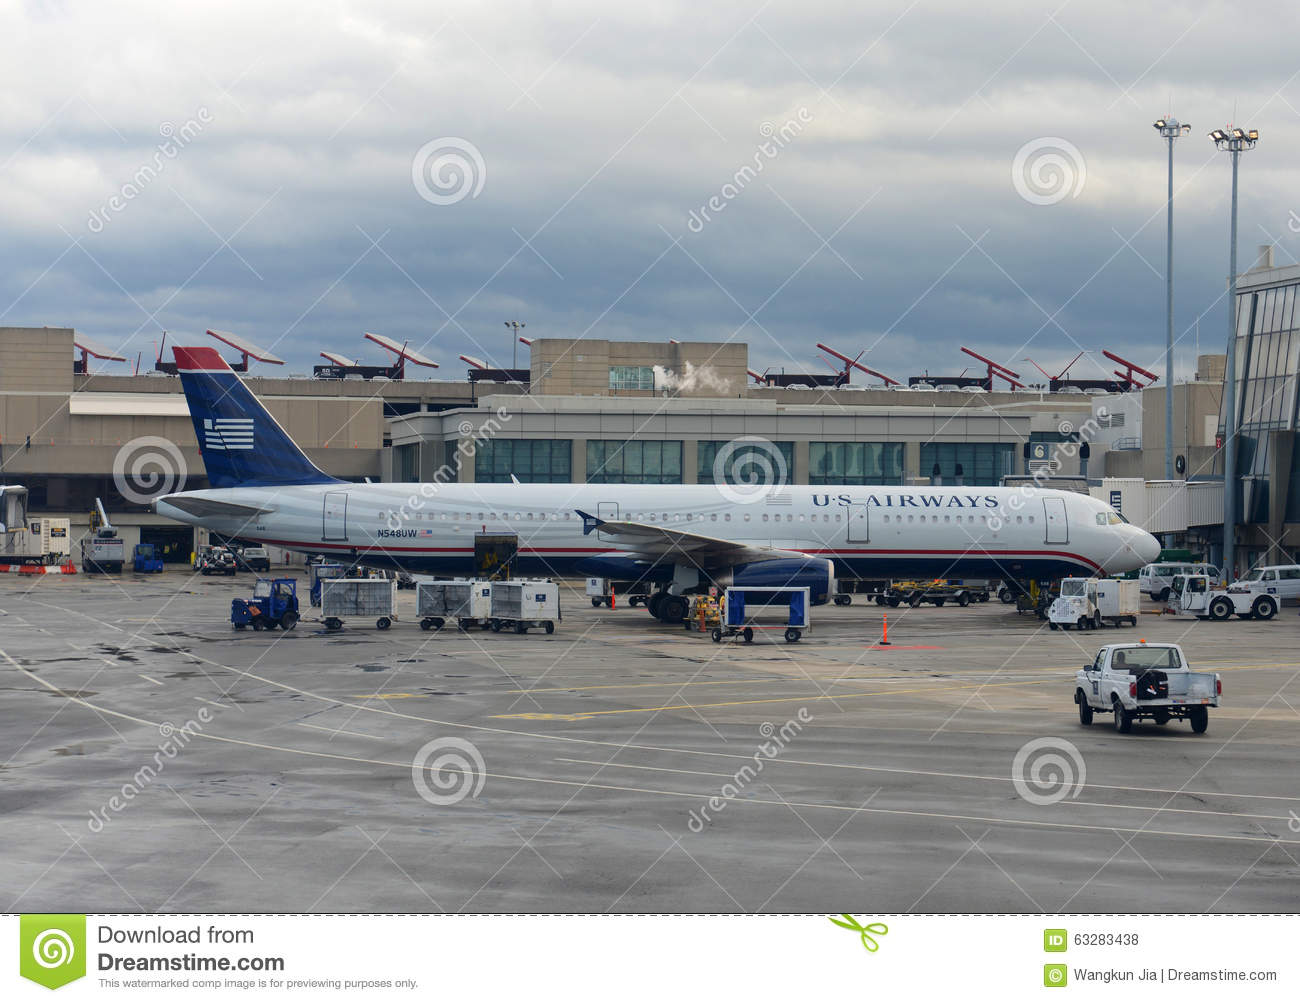 american airlines airbus 321 at boston airport editorial Waterboarding Clip Art Plane Clip Art